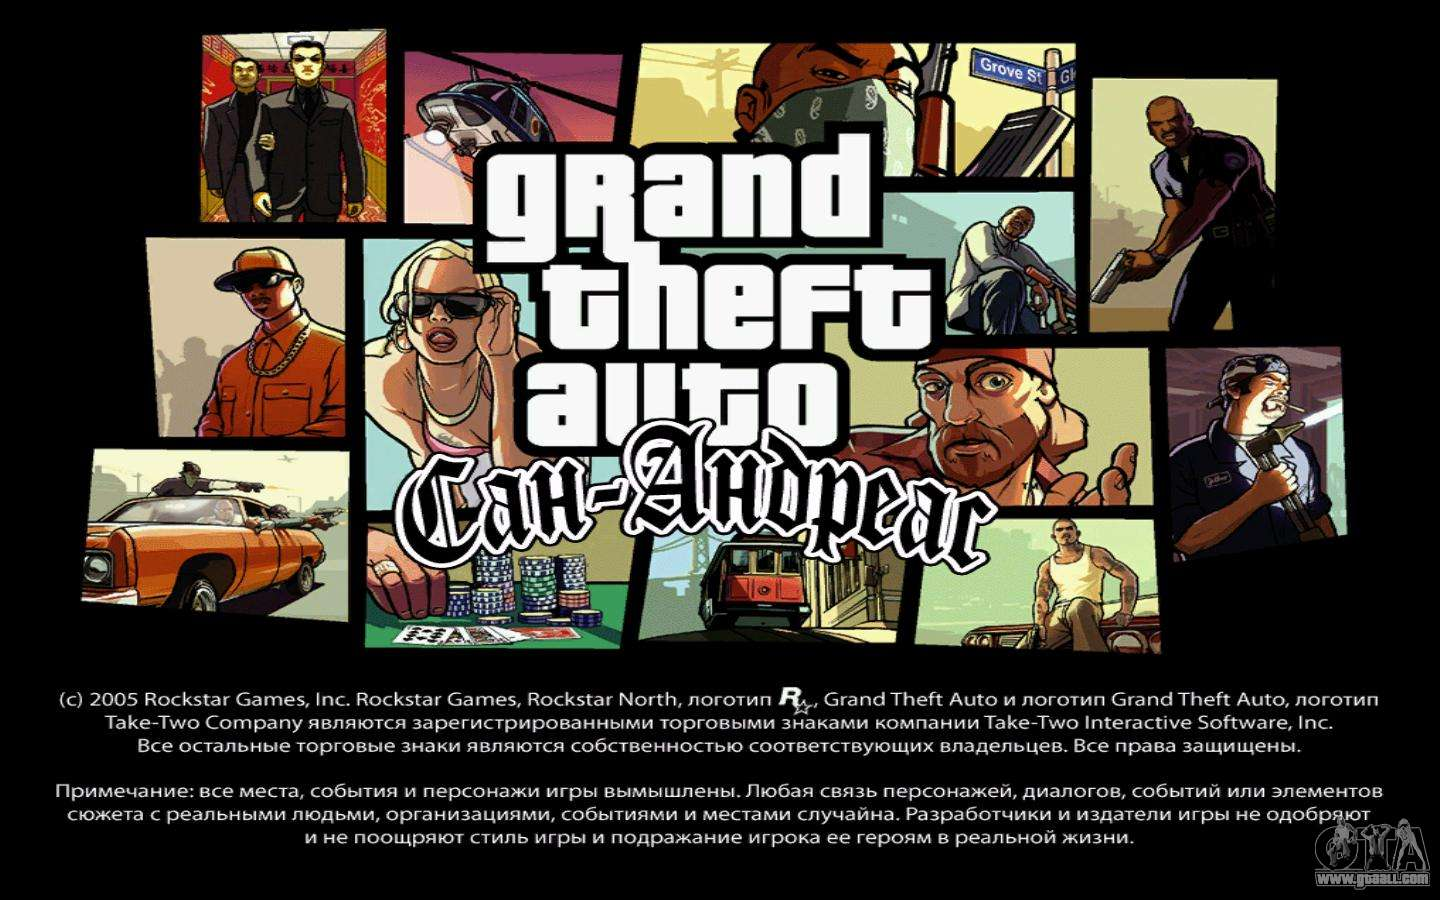 Grand theft auto 3 free download pc game.